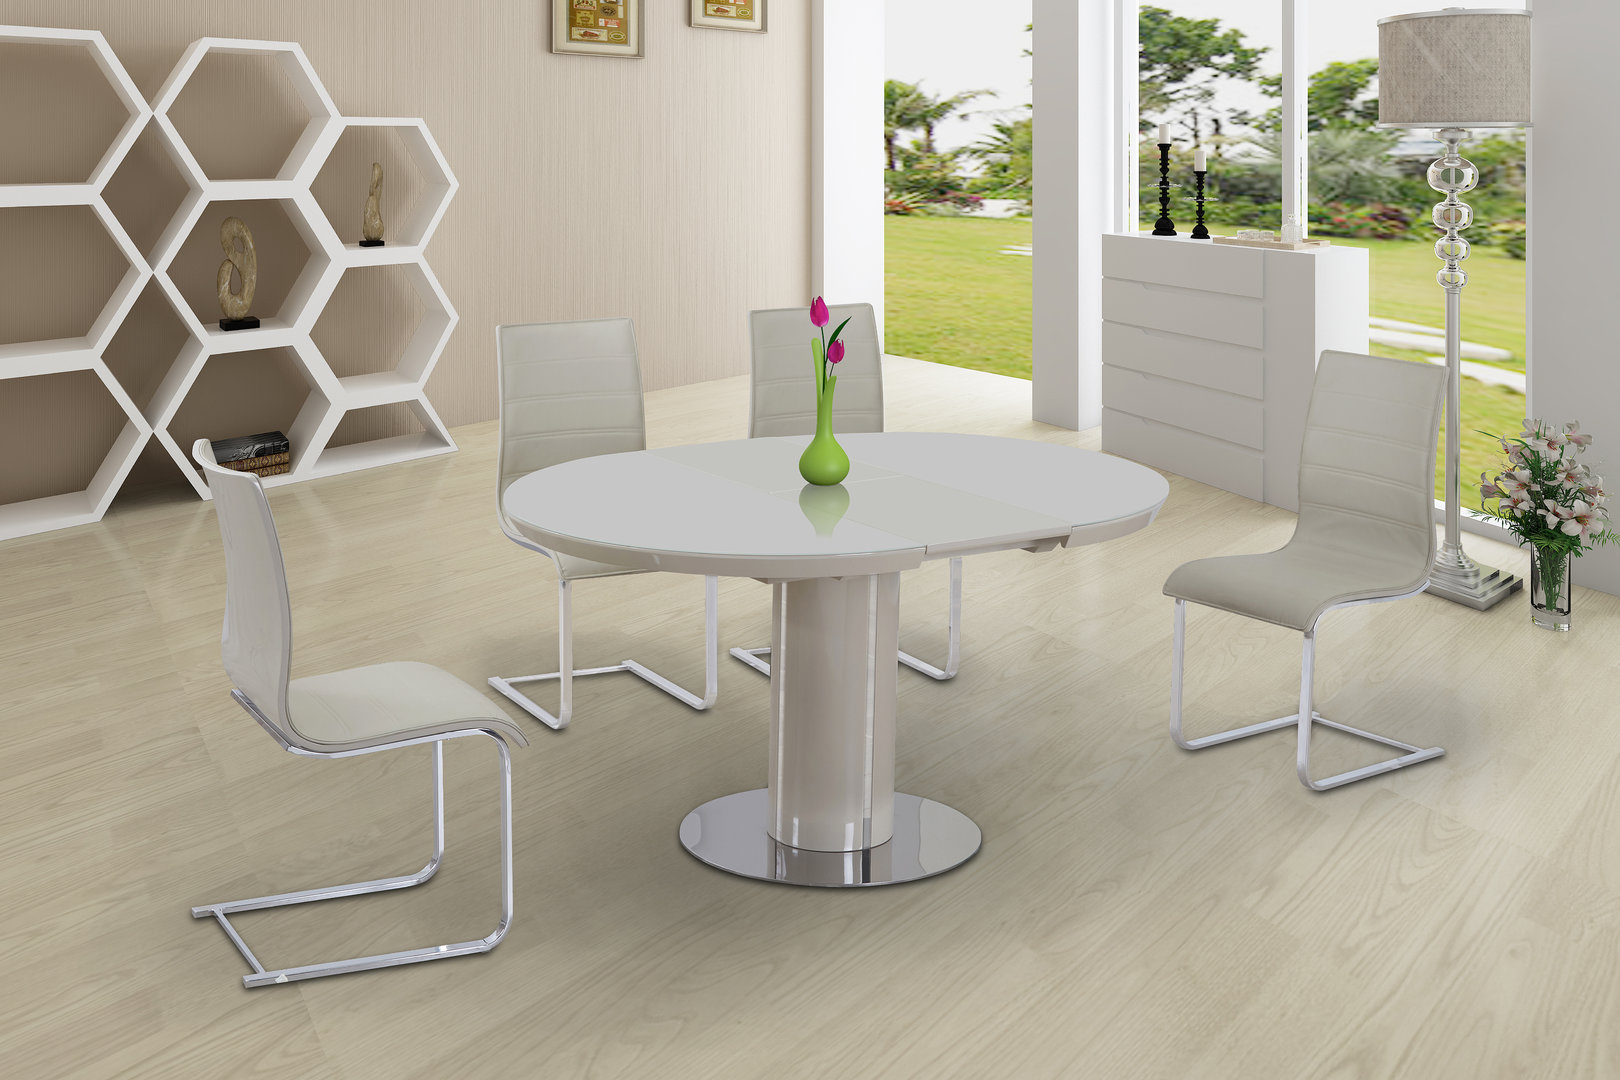 Round cream glass high gloss dining table 4 chairs for 110cm round glass dining table